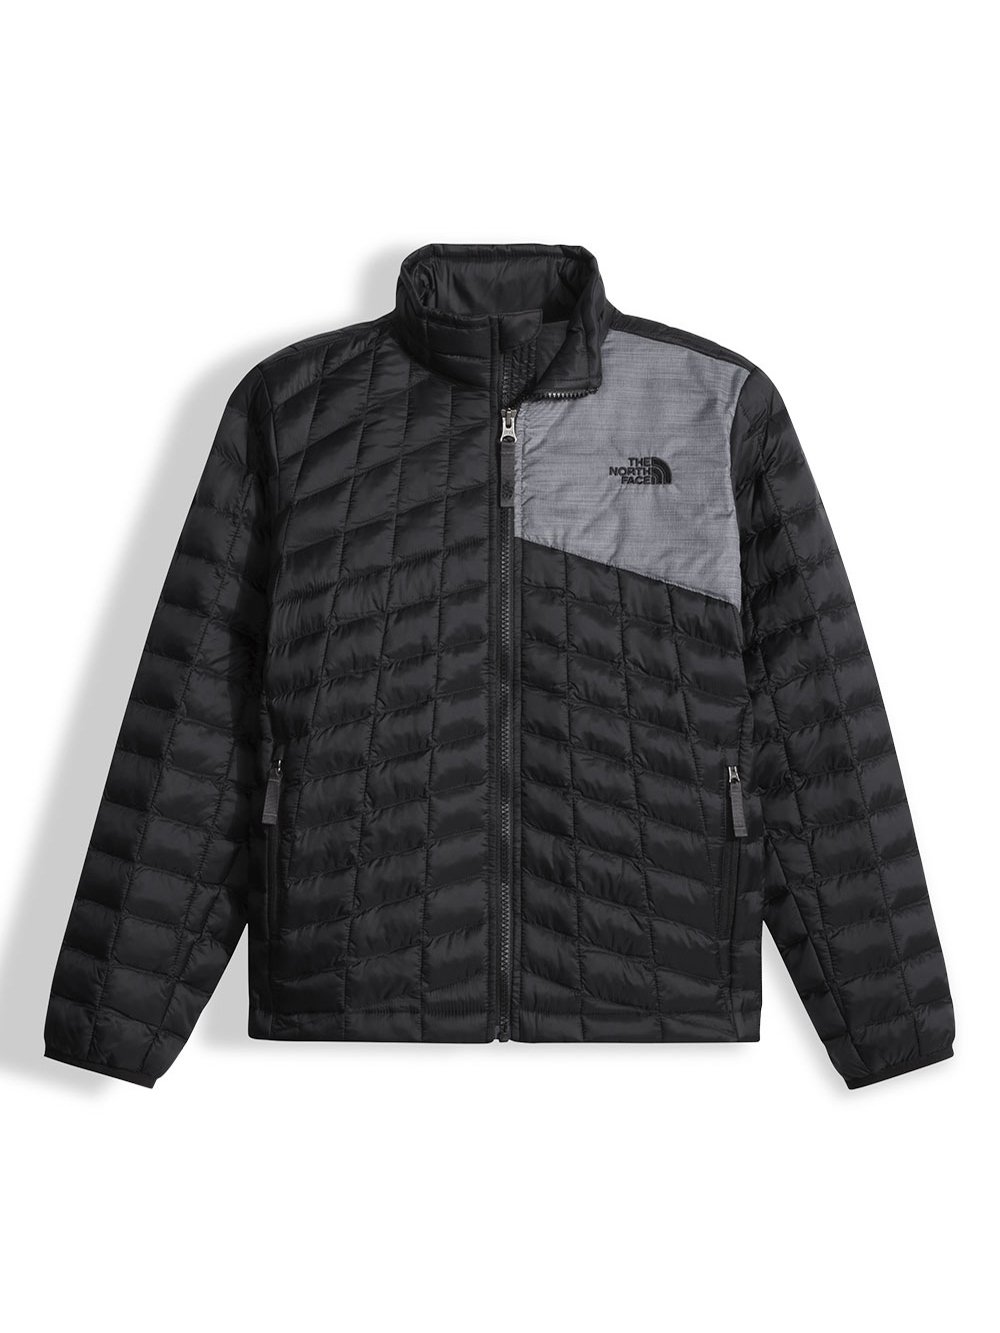 The North Face Little Boys' Thermoball Full Zip Jacket (Sizes XXS - XS)